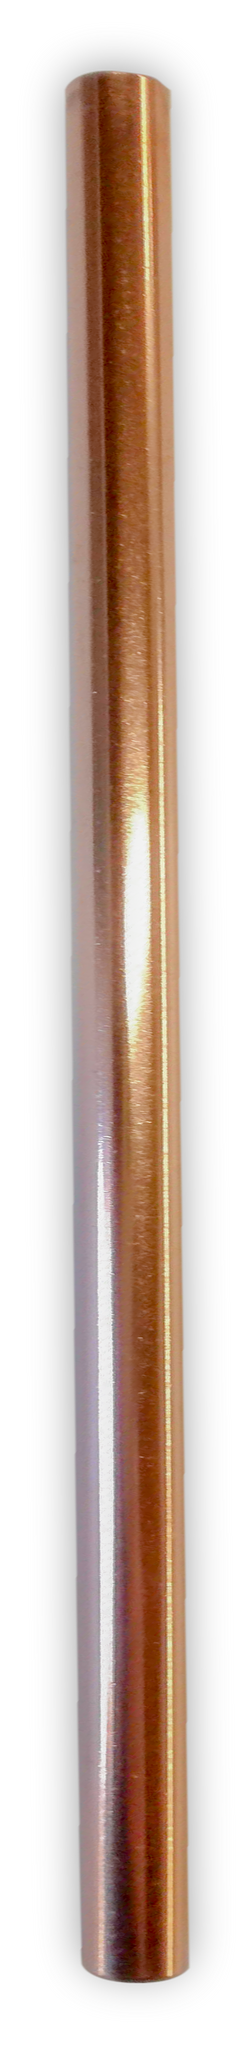 Copper Straw - Plain Smoothie Straw (9mm - diameter)